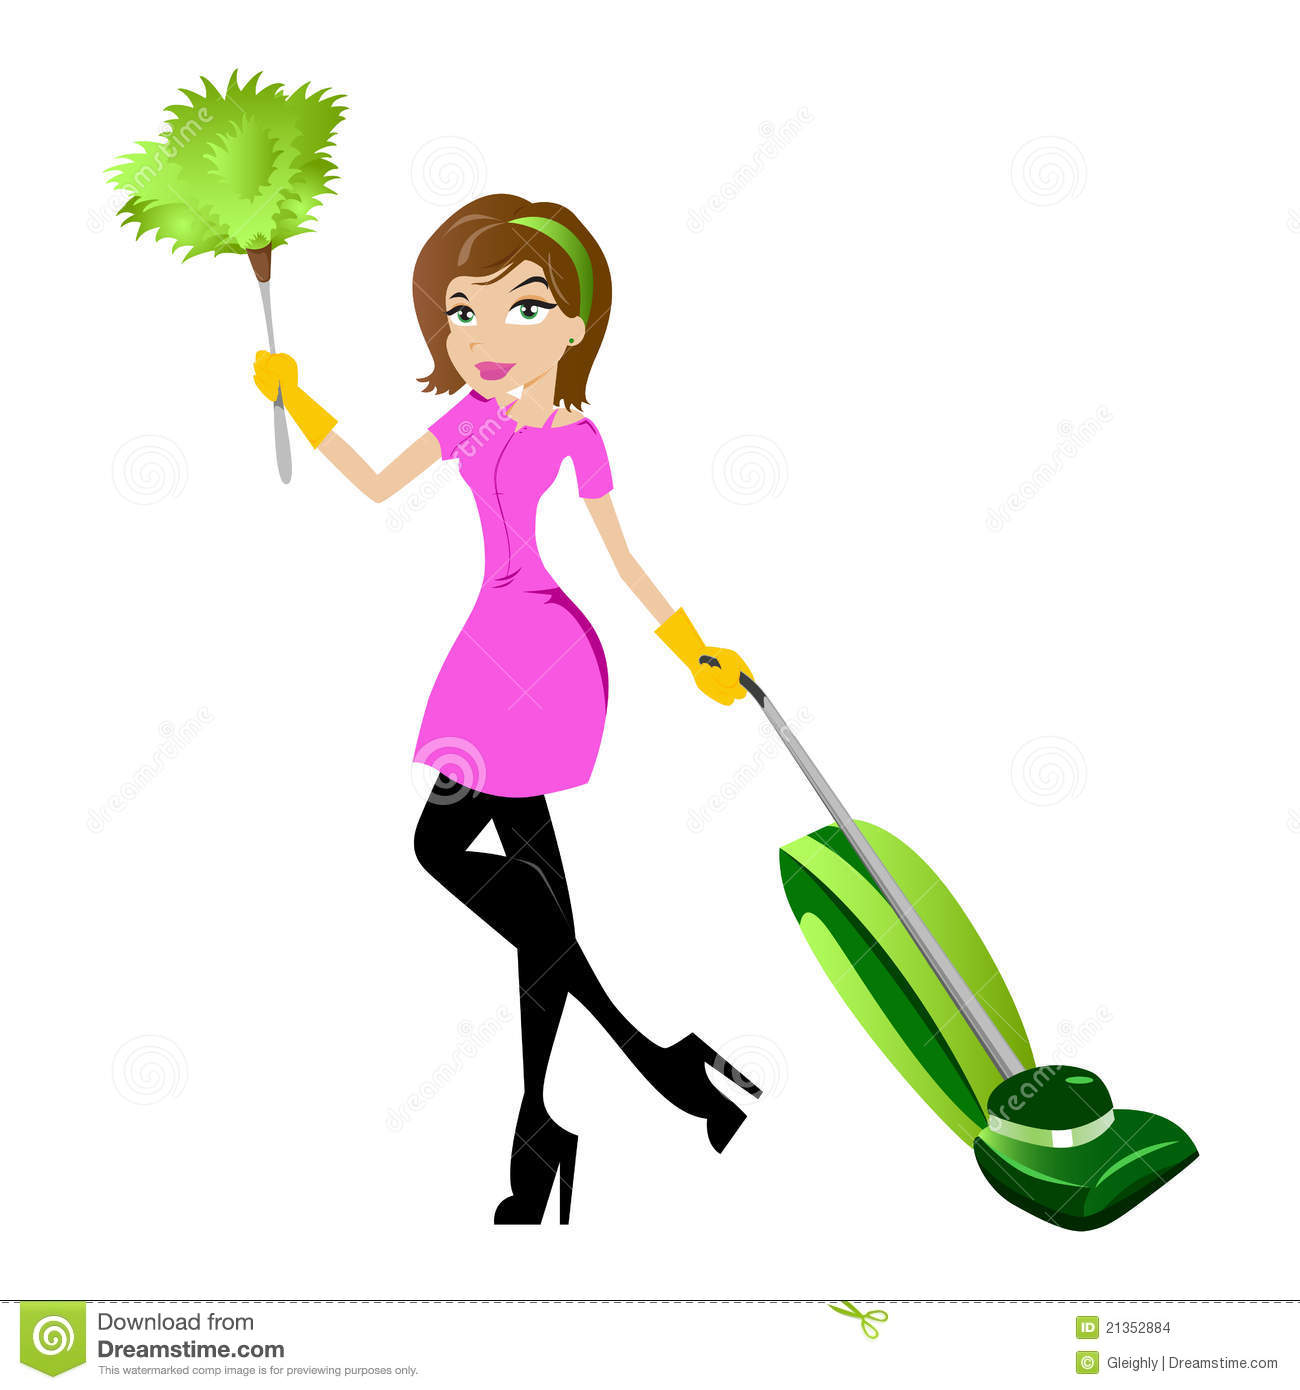 Cleaning lady character with vacuum and feather duster.